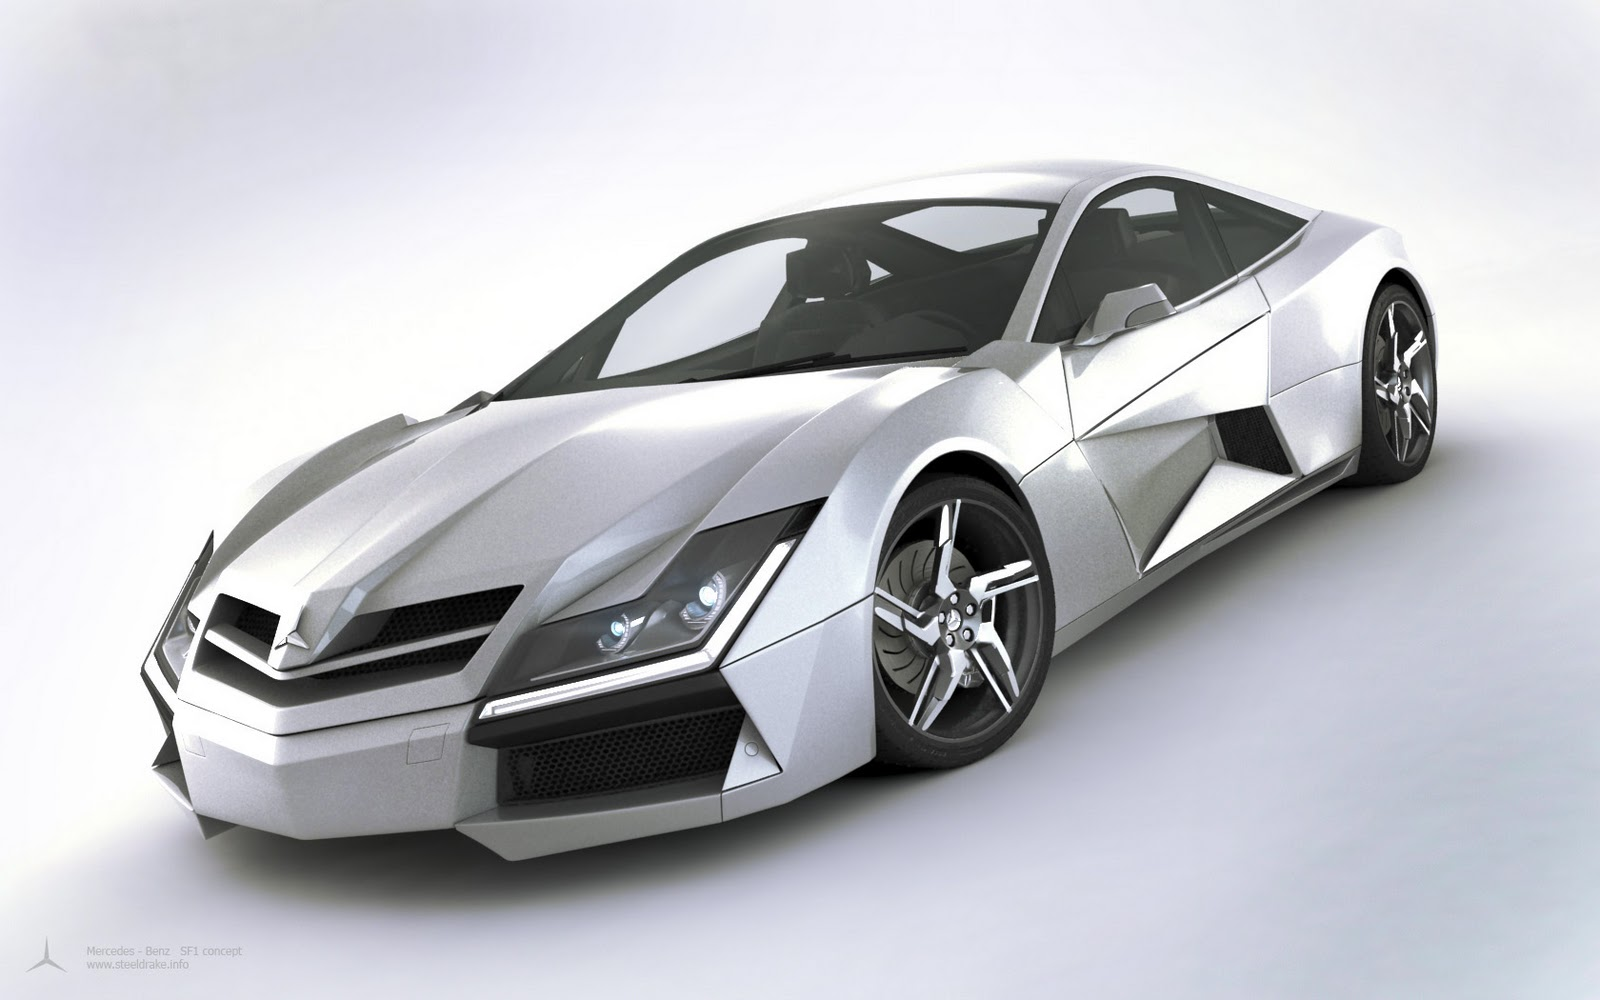 Super punch mercedes benz sf1 concept car for Mercedes benz hybrid cars